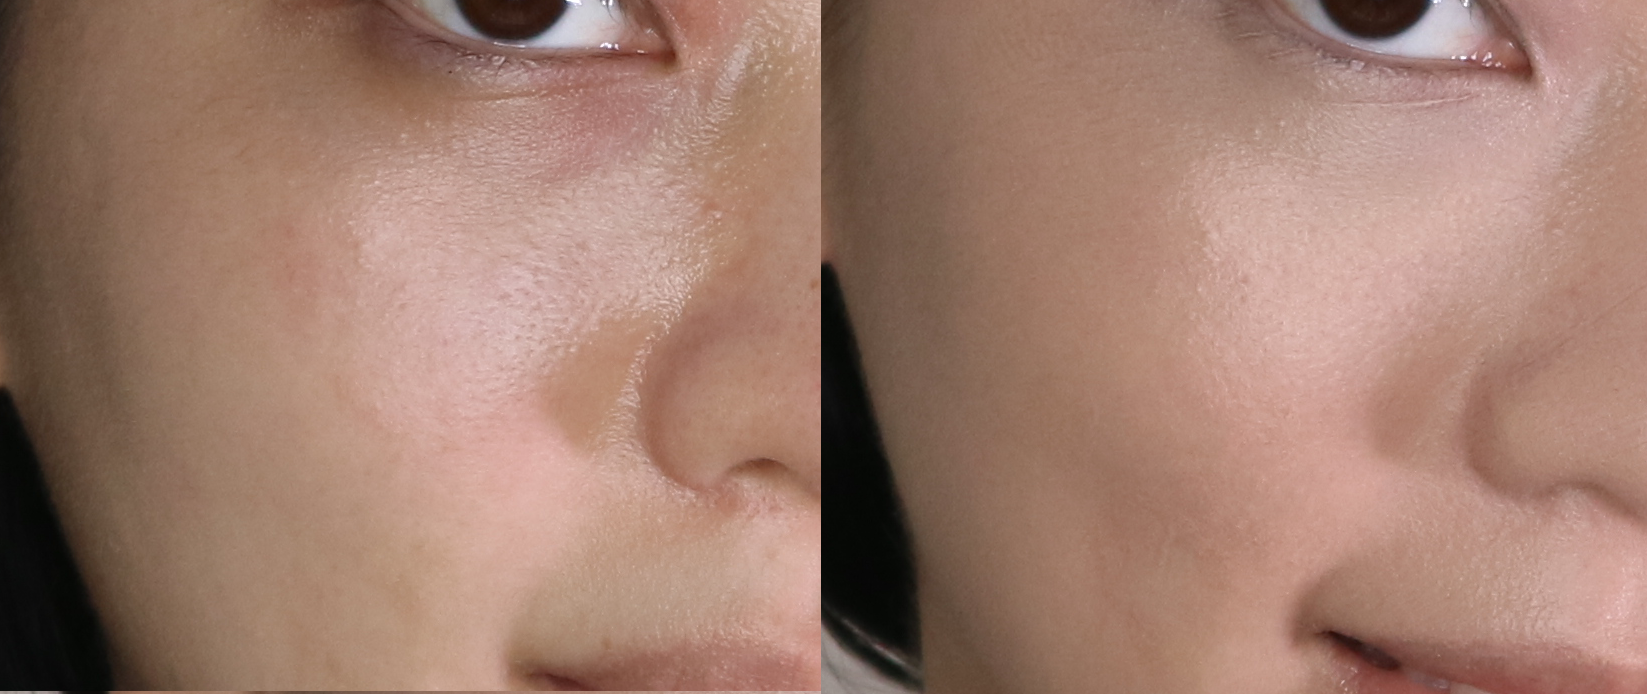 Before and after using the primers and foundation